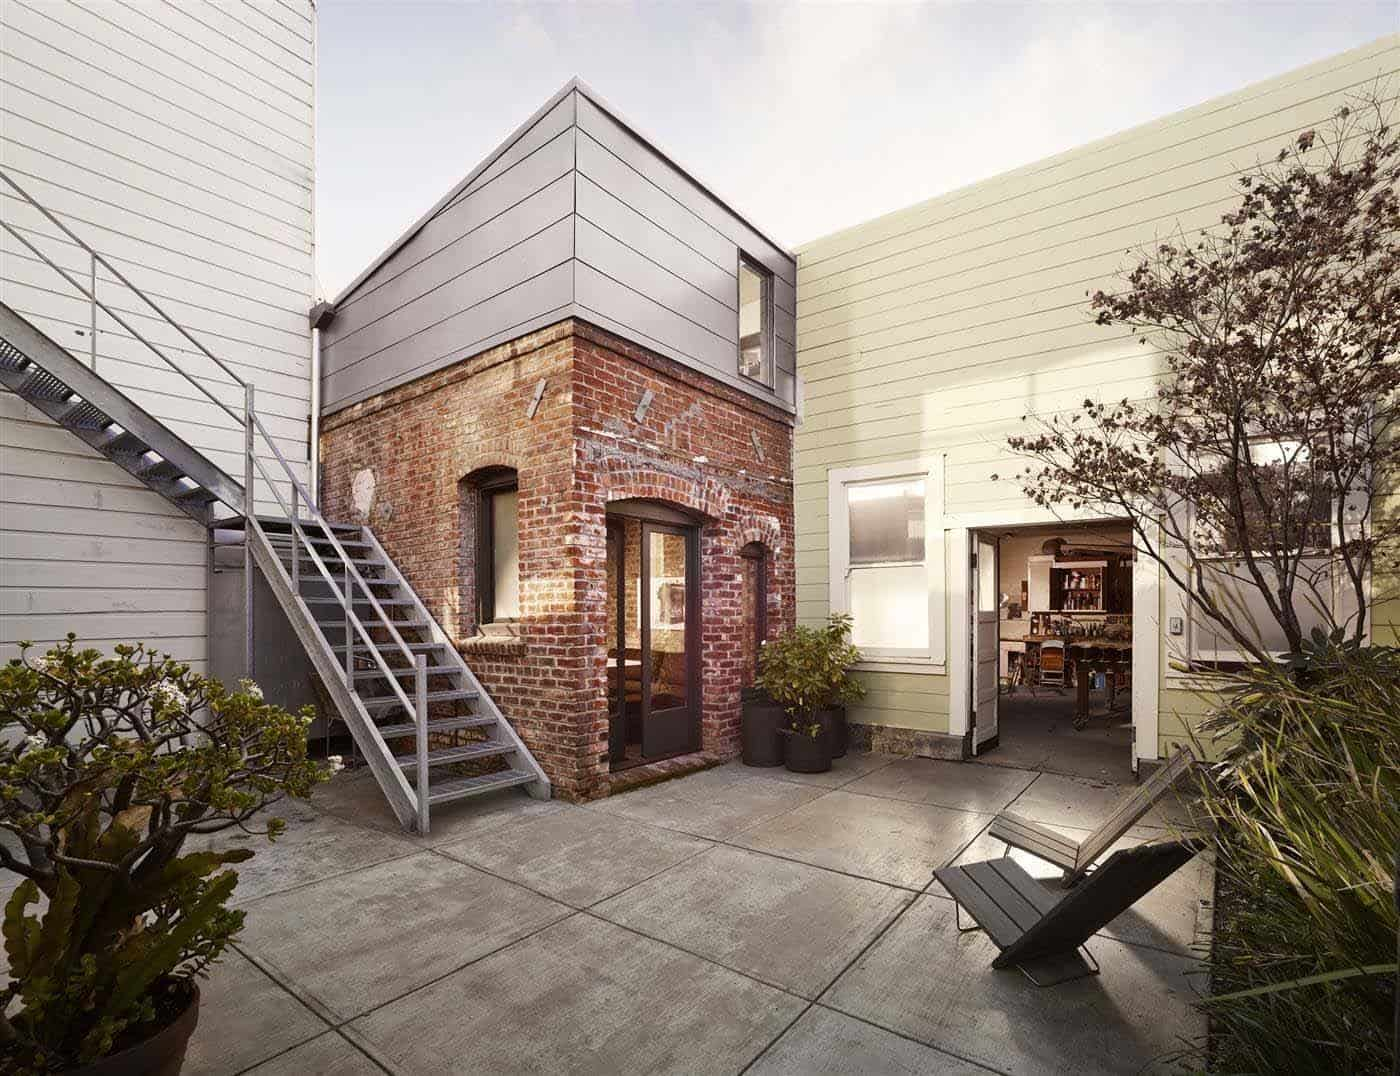 Tiny Brick House-Azevedo Design-01-1 Kindesign